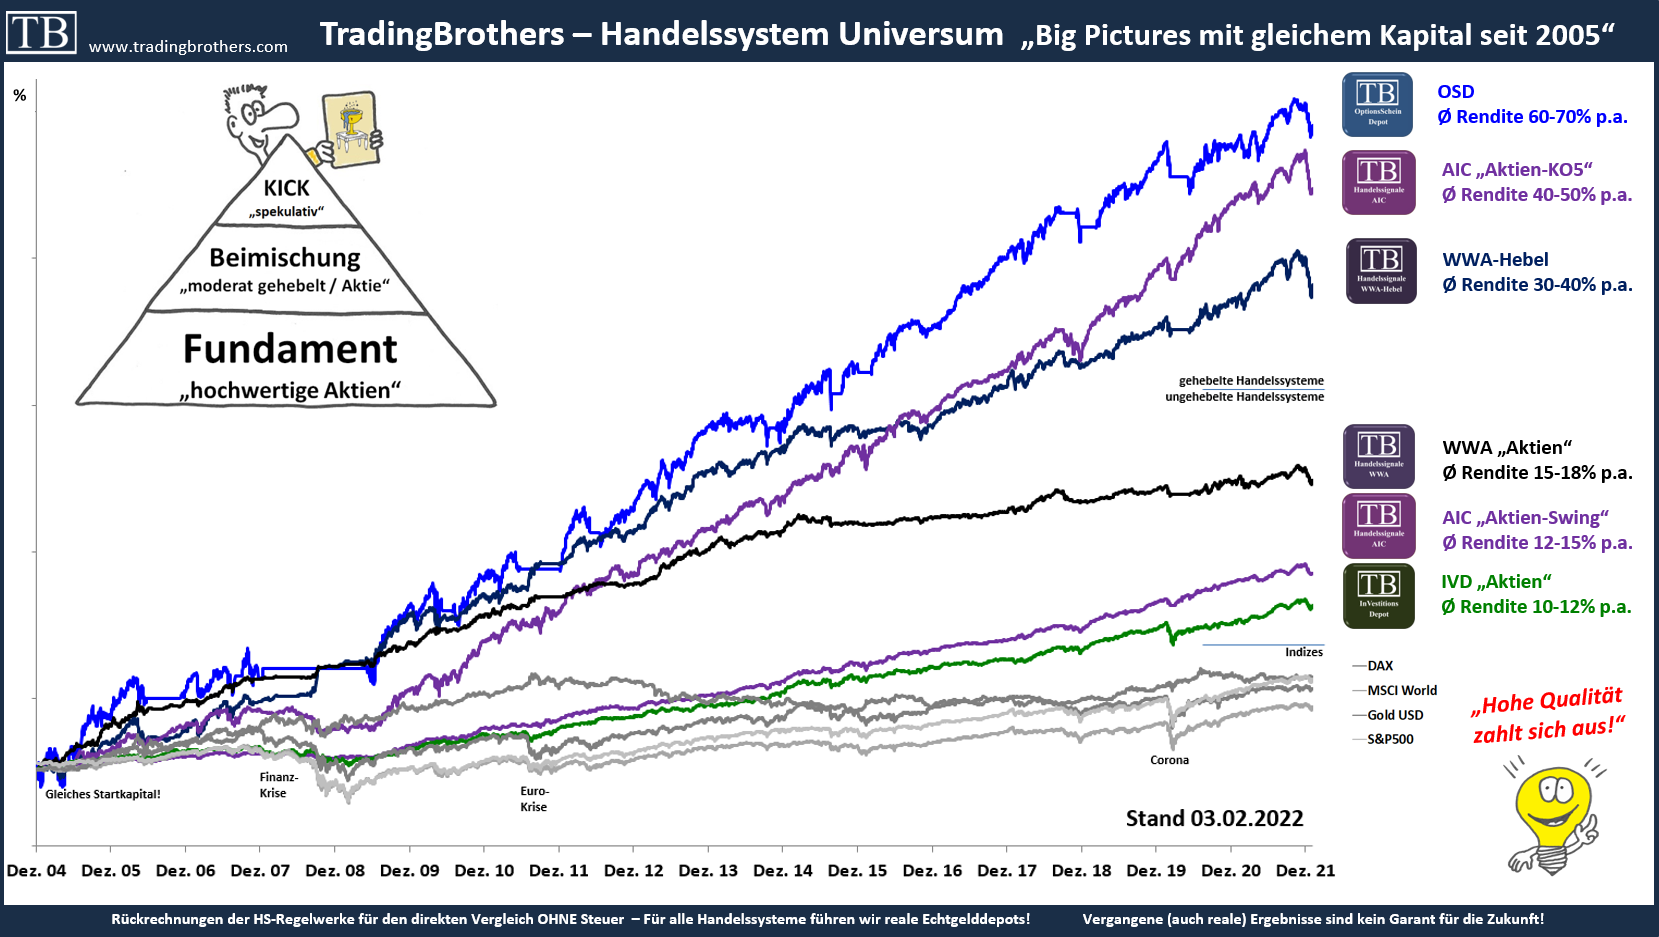 equity HS Vergleich.langfristig.tradingbrothers